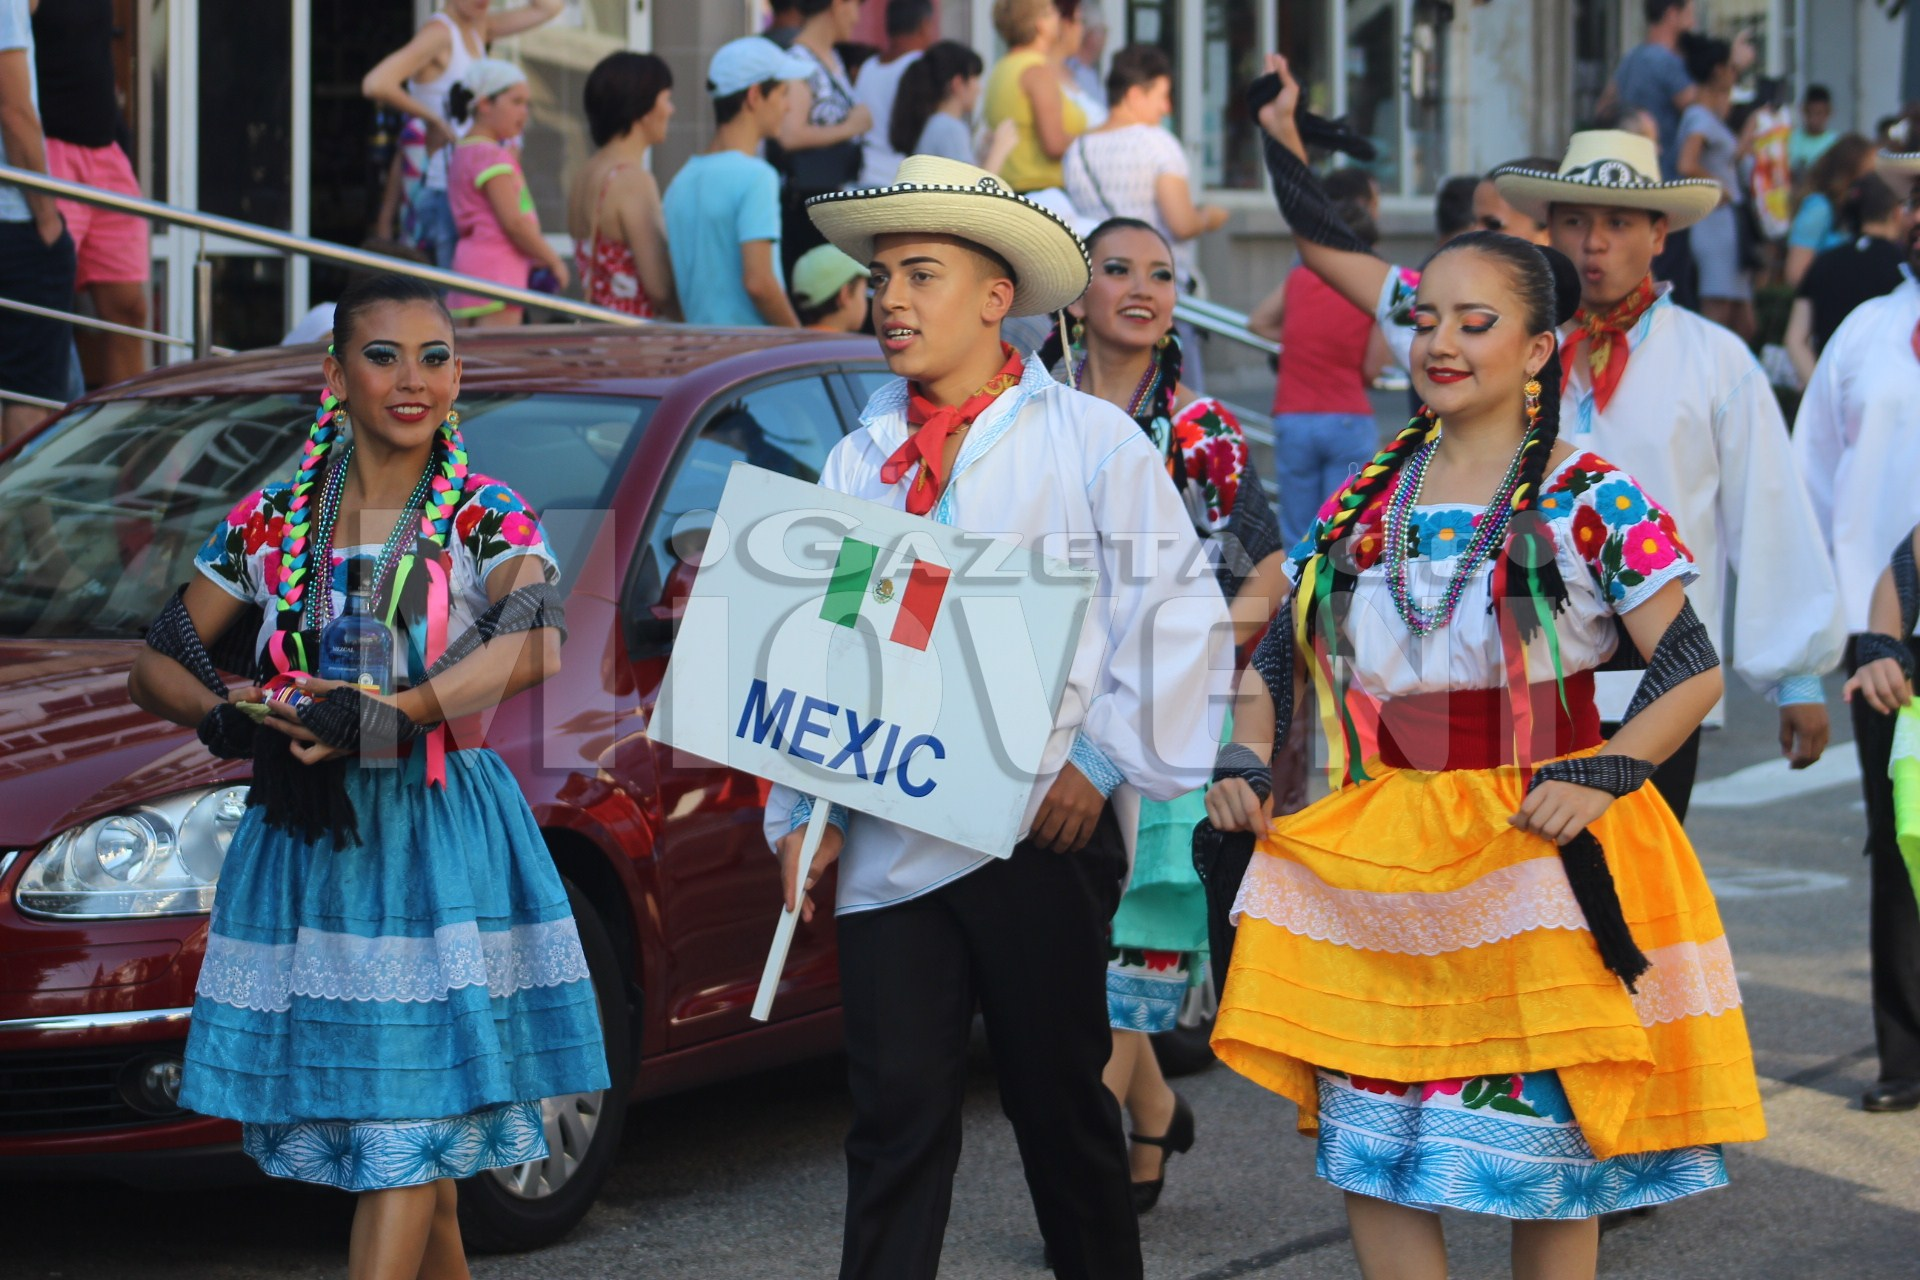 festivalul-carpati-mioveni-august-2017 (15)